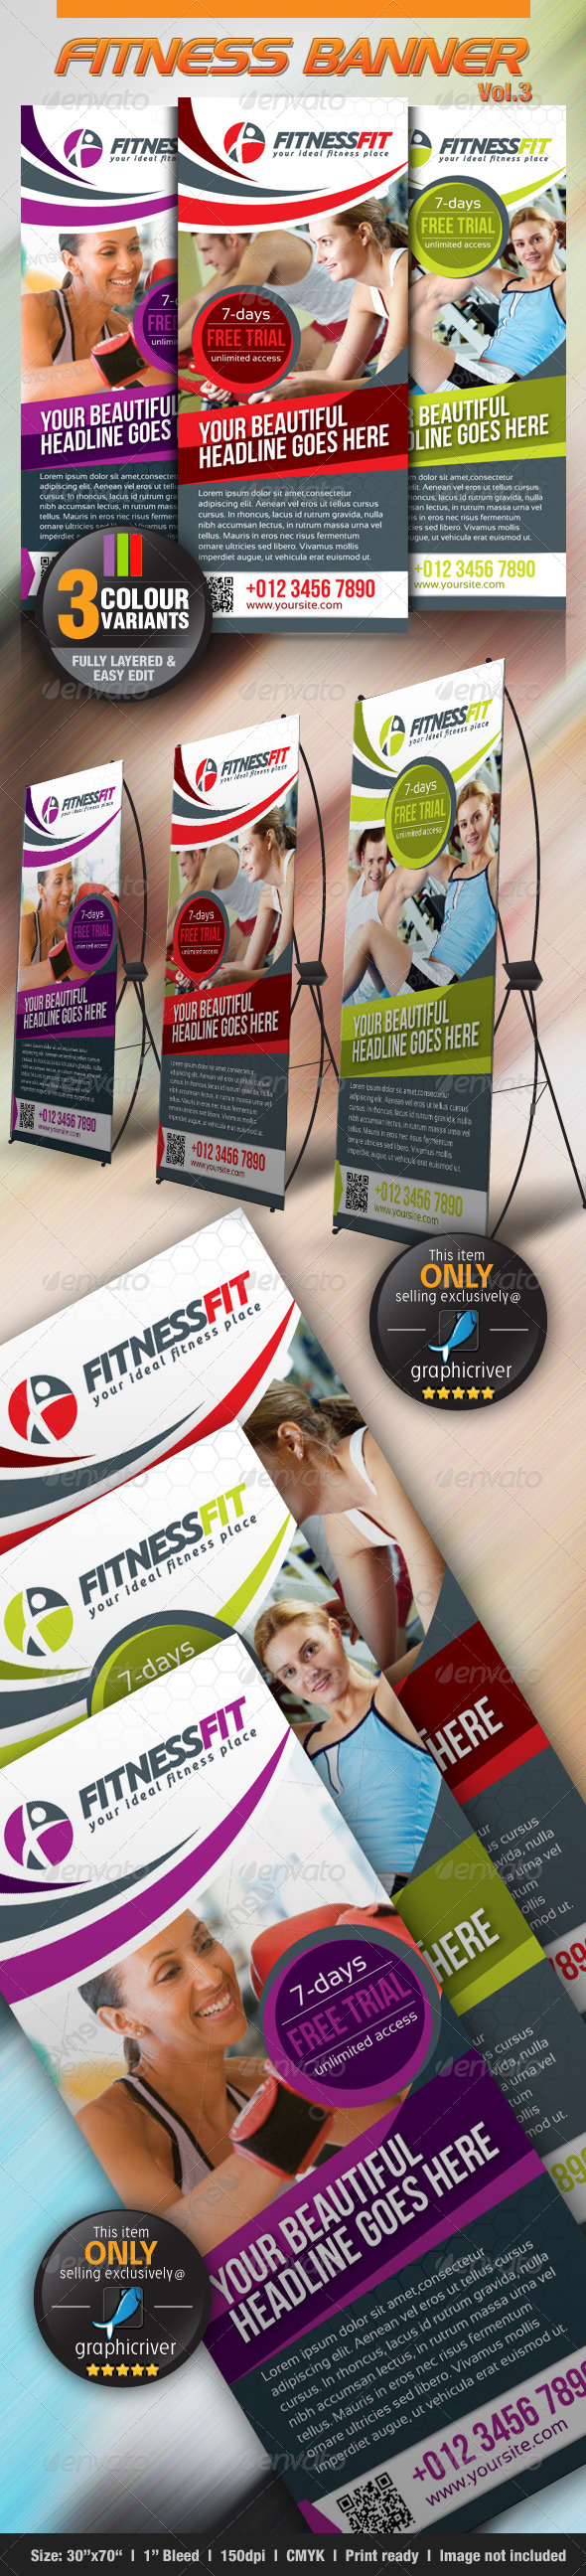 GraphicRiver Fitness Banner Vol.3 3065693